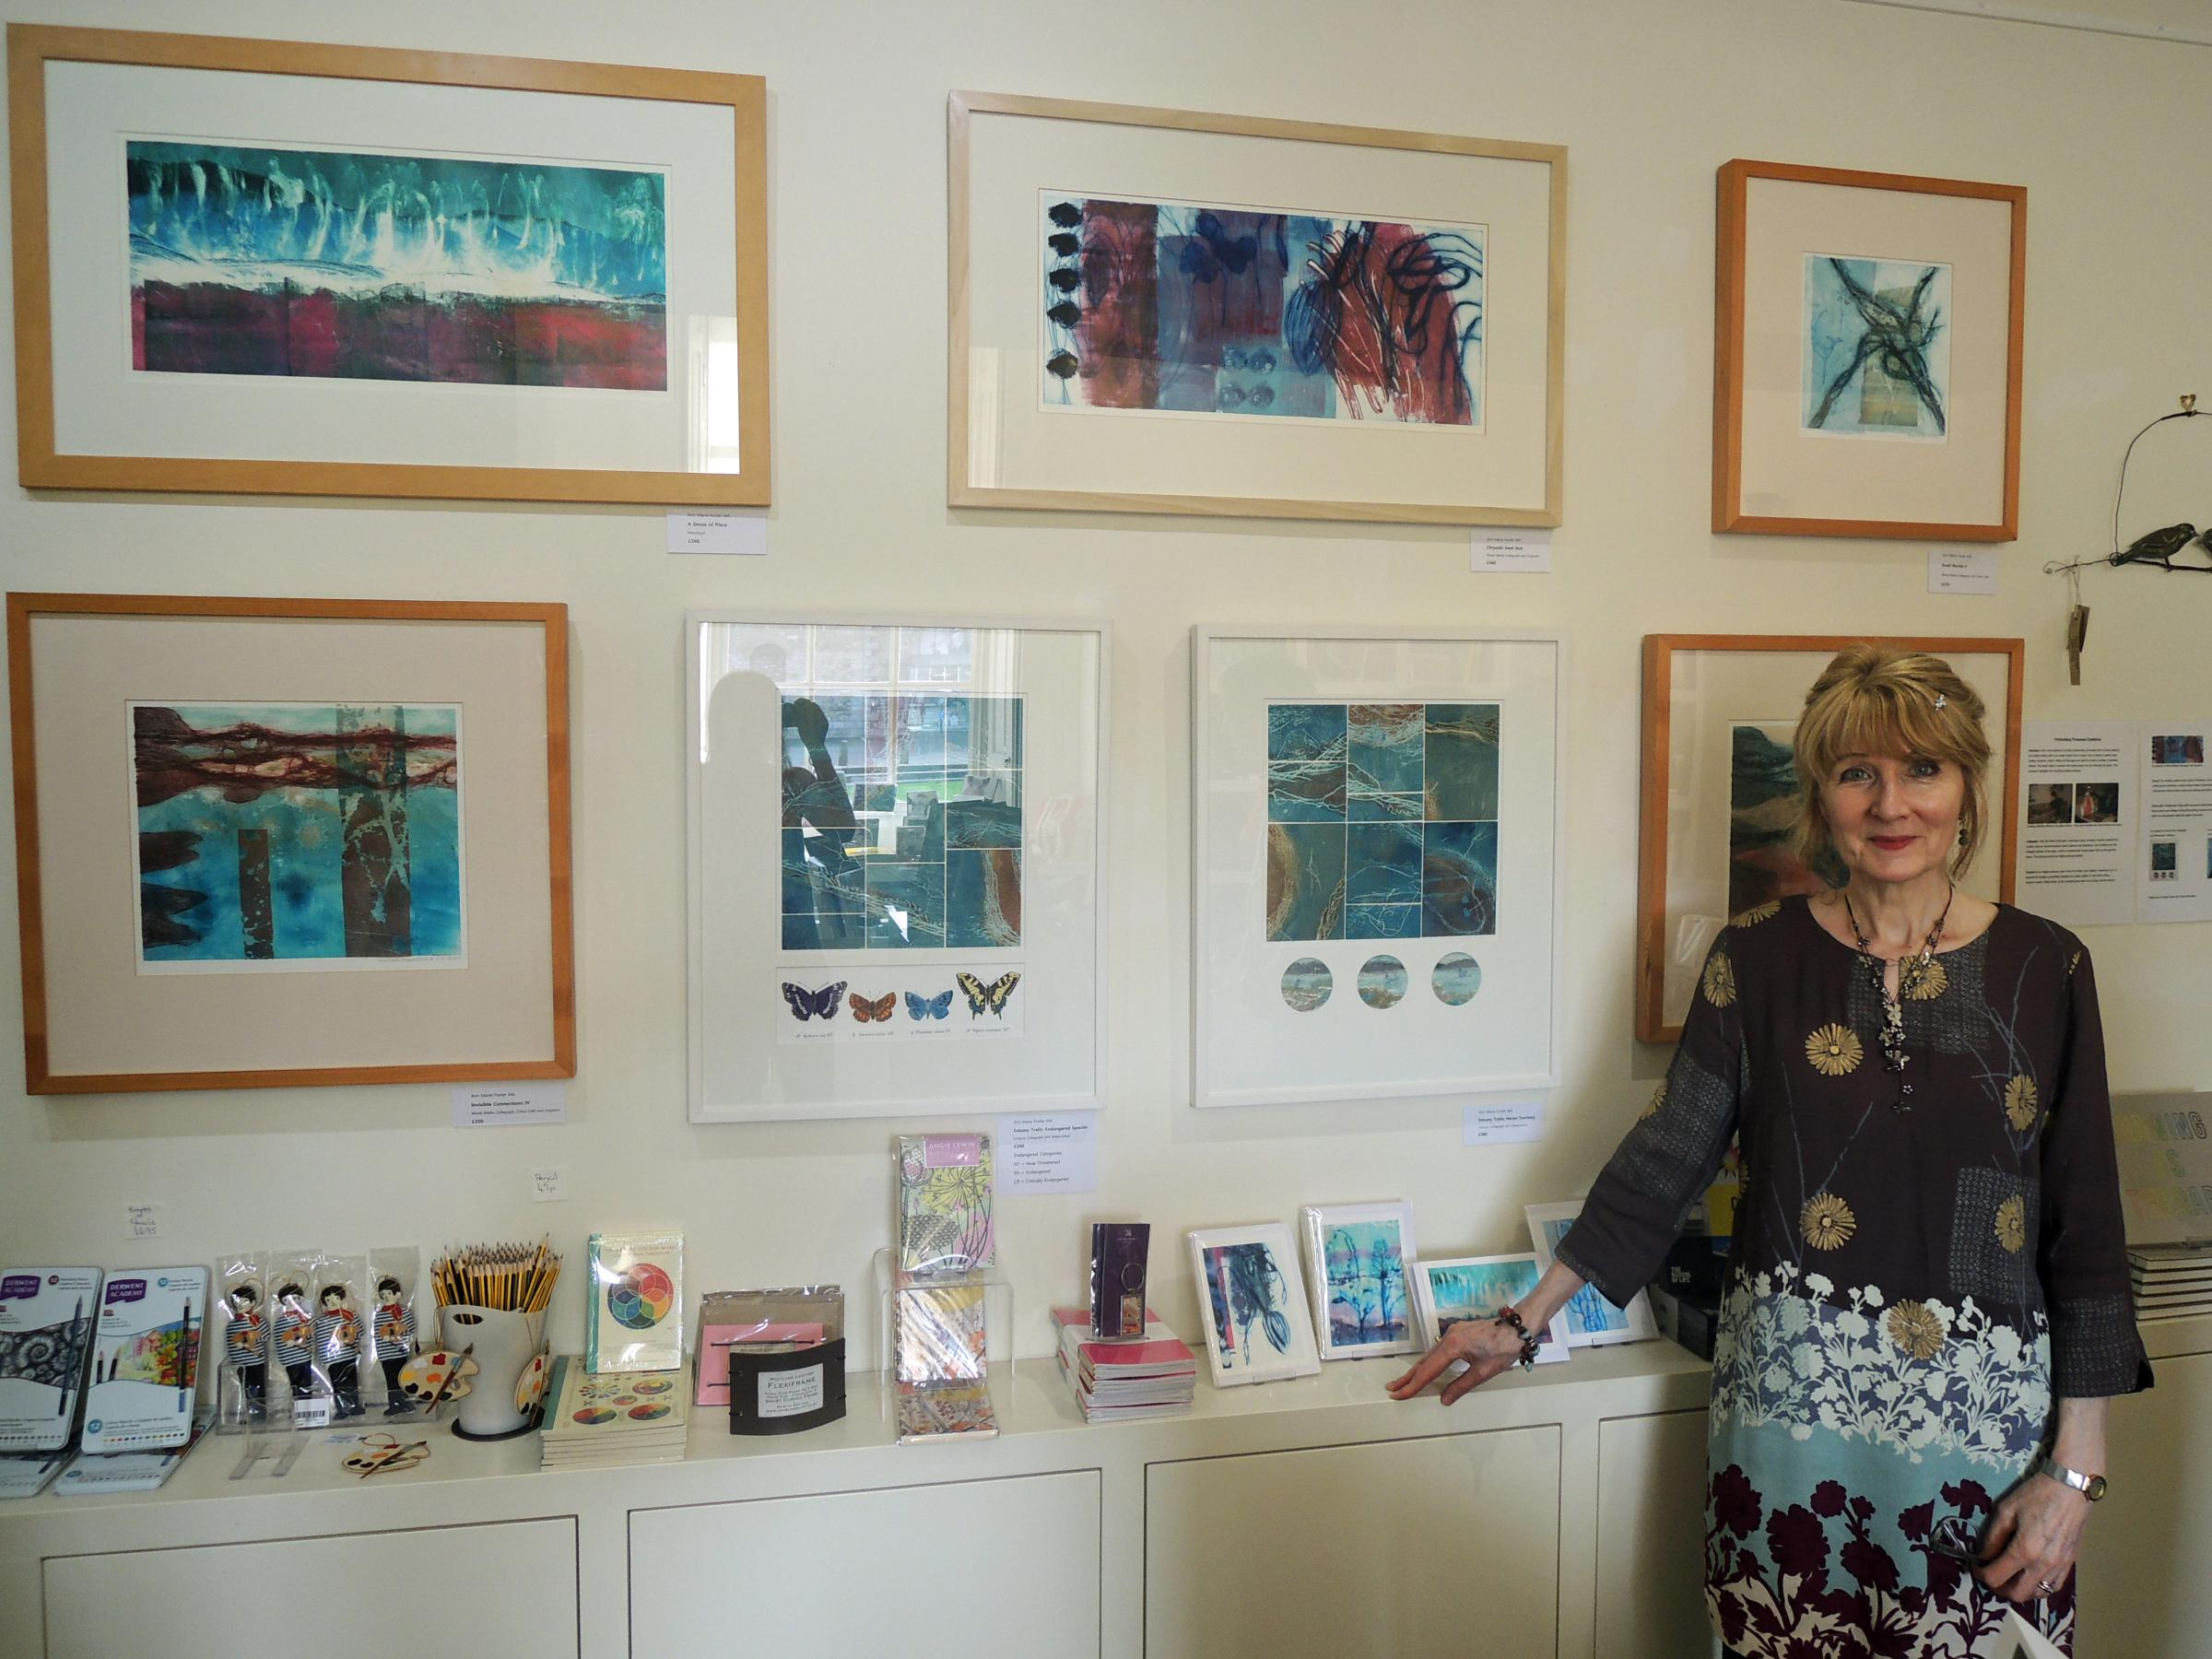 Ann Marie Foster said she was delighted to be asked to exhibit her artwork in the shop at Abbot Hall to coincide with the Kendal gallery's celebration of female artists from the Royal Academy